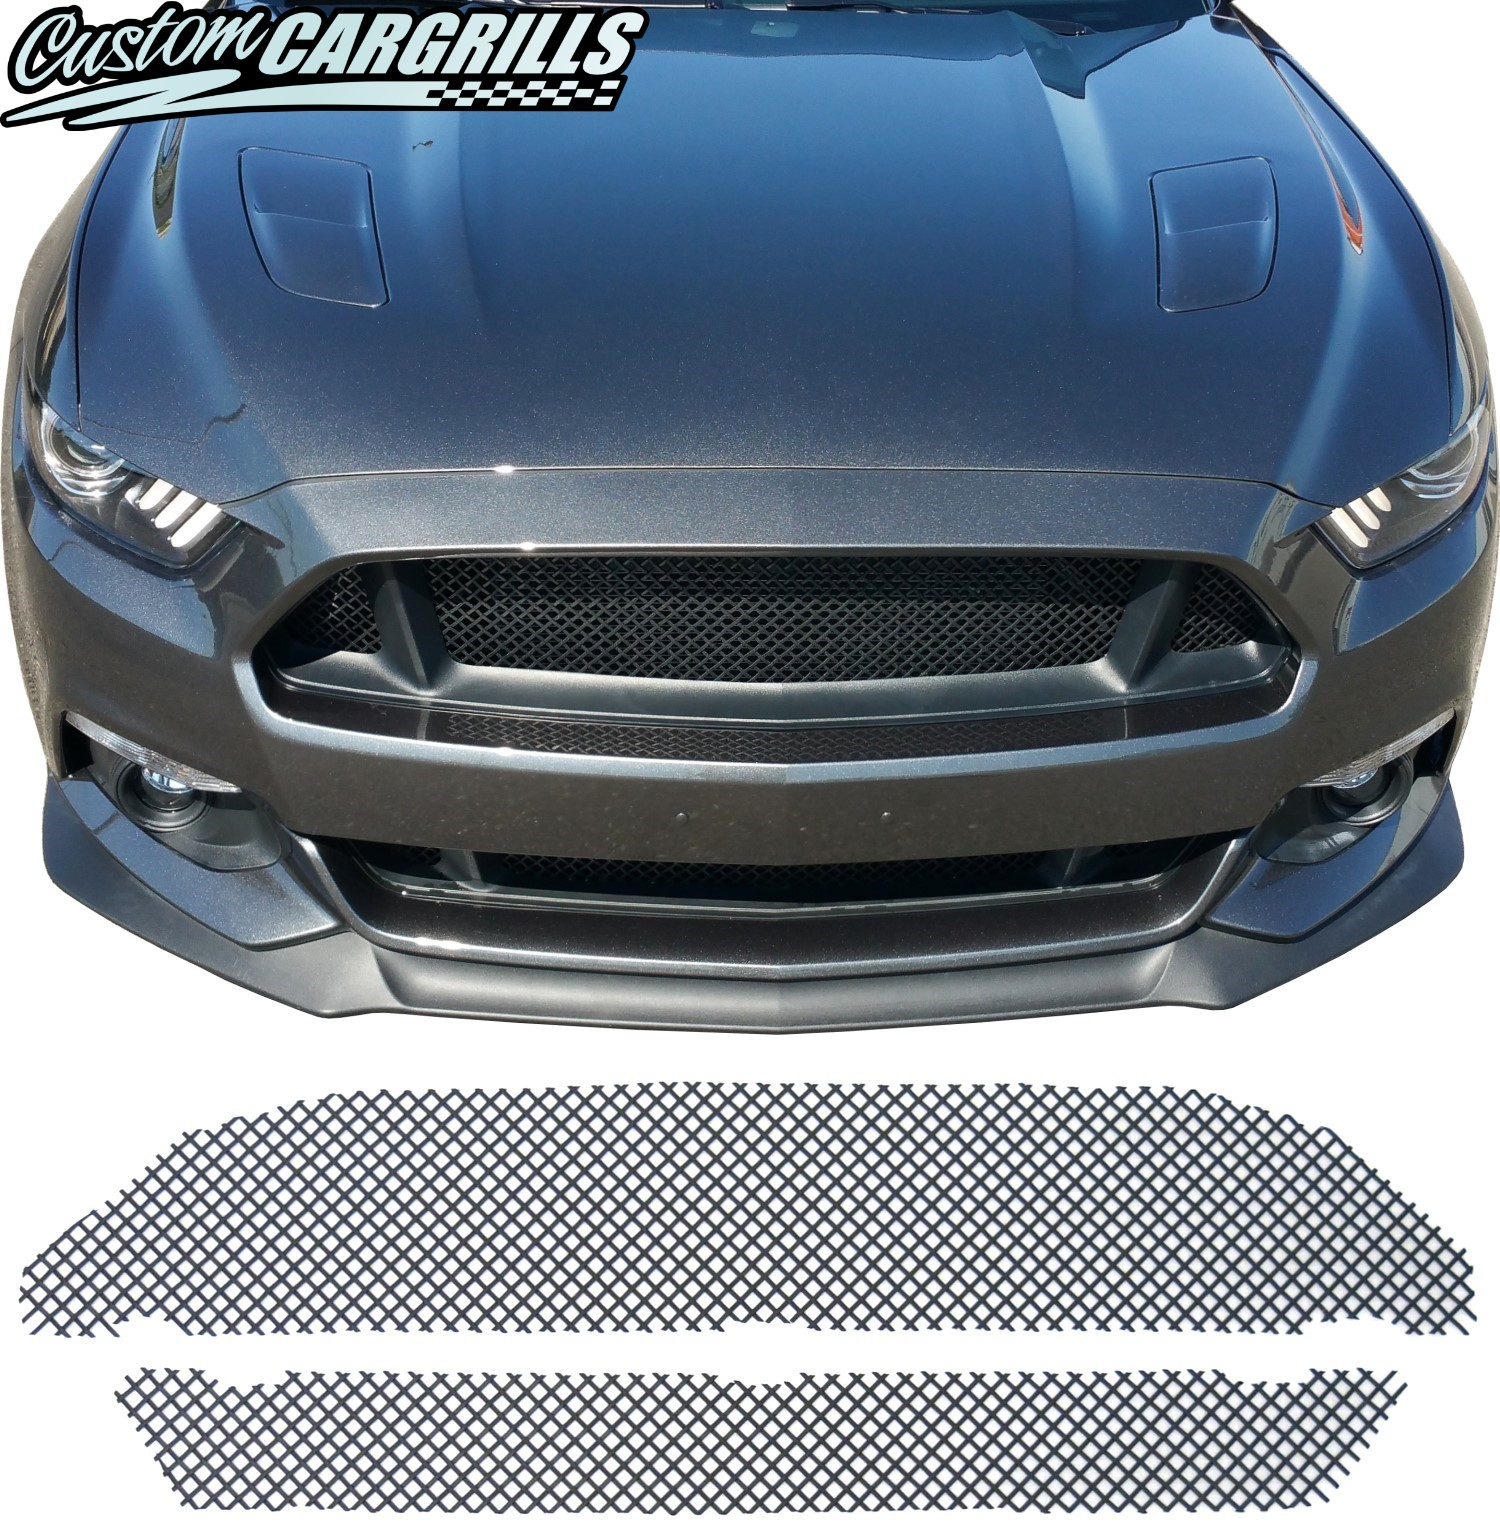 Woven Mesh Grill Kit for 2015 - 2017 Ford Mustang GT